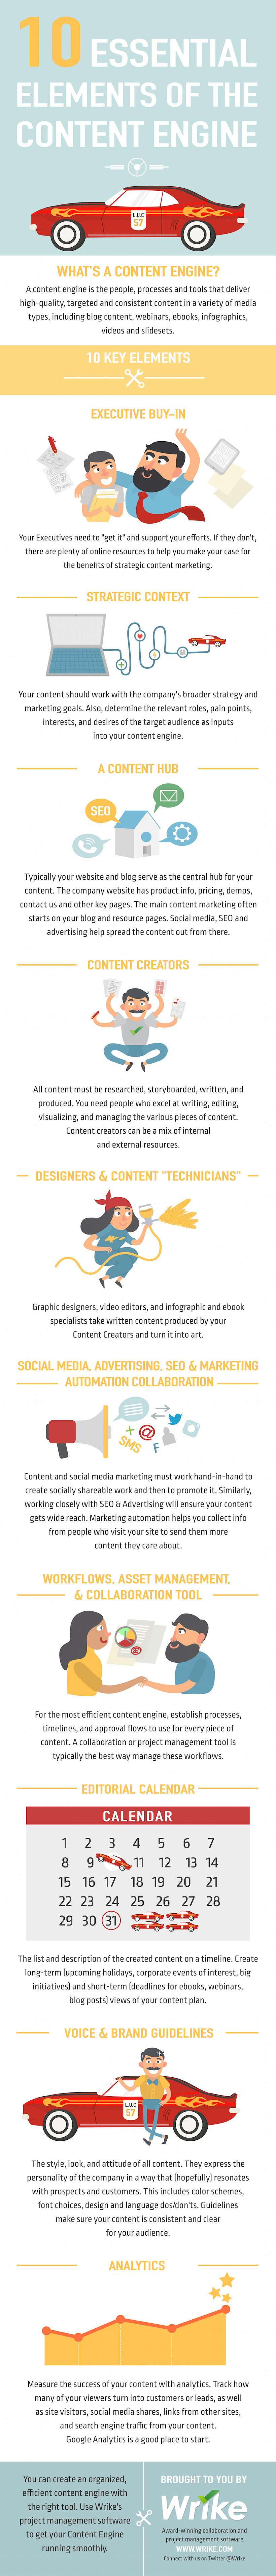 10 Elements of a Successful Content Marketing Engine (#Infographic)